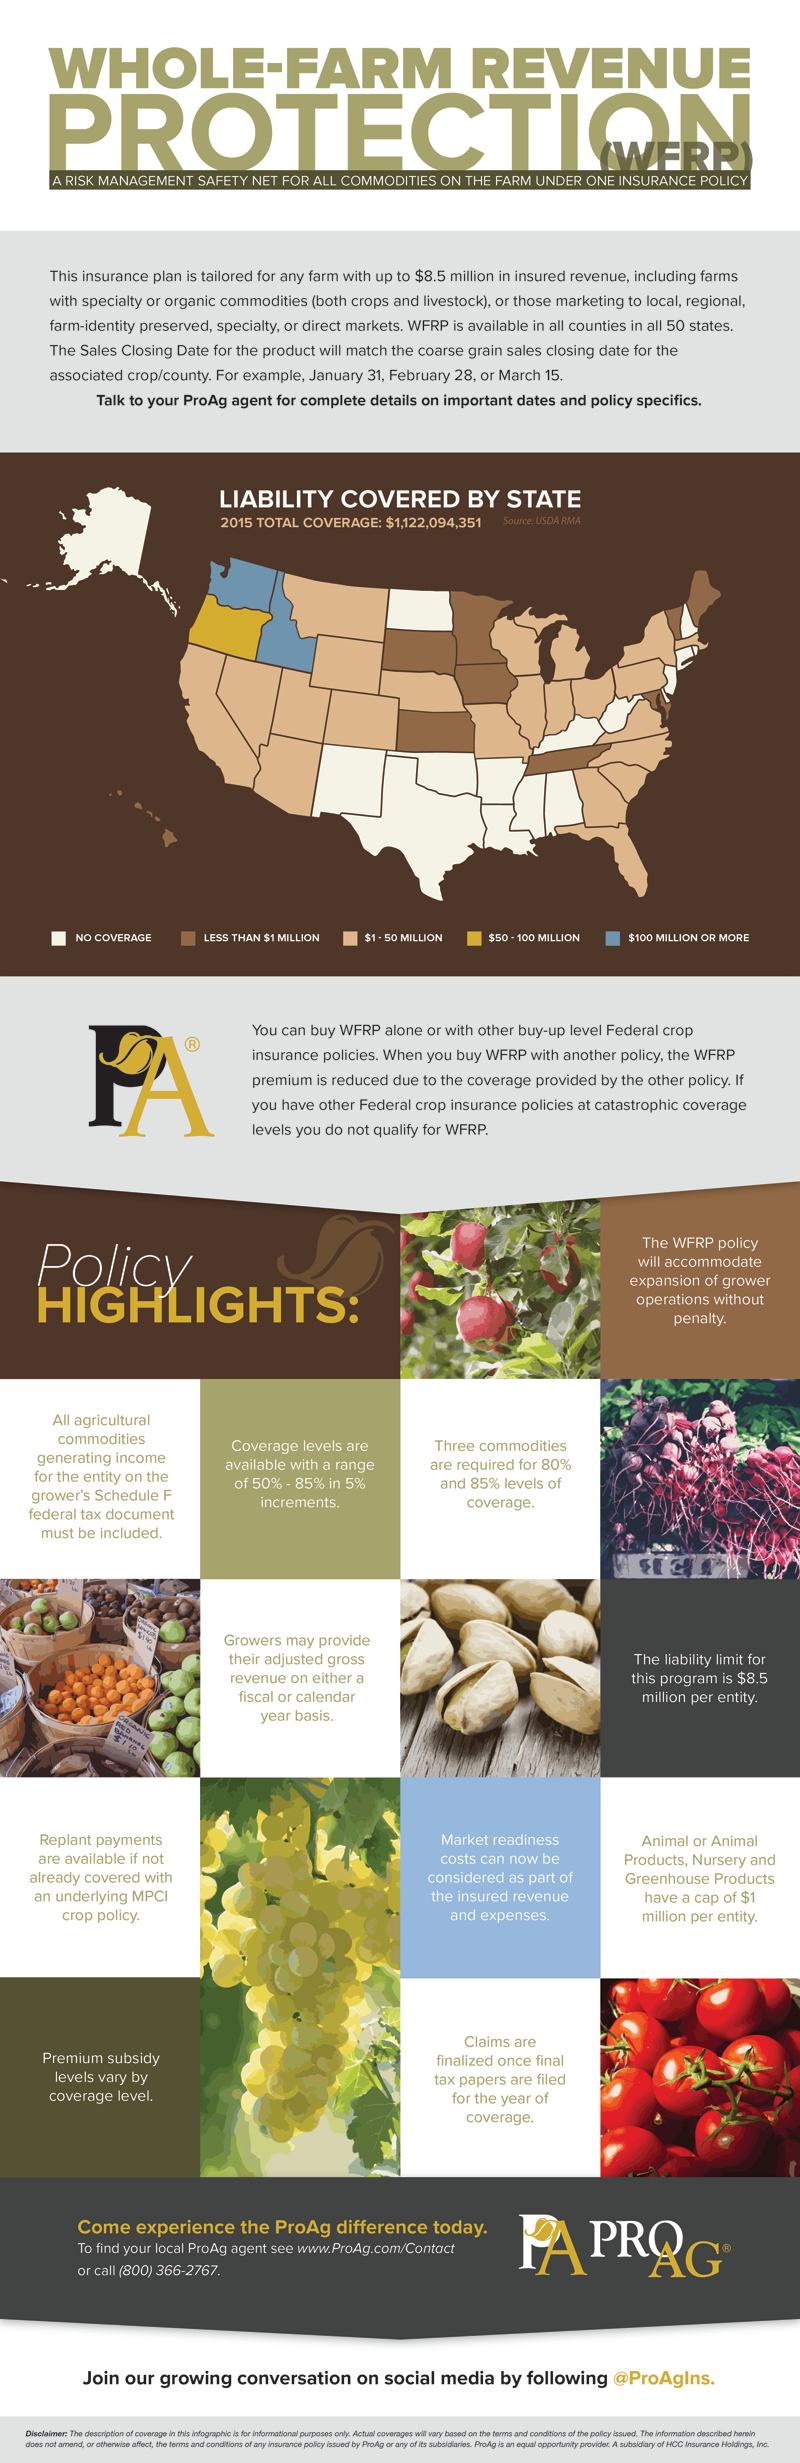 The Ultimate Guide to Whole-Farm Revenue Protection (WFRP) Crop Insurance: Talk to your ProAg agent for complete details on important dates and policy specifics. Come experience the ProAg difference today.